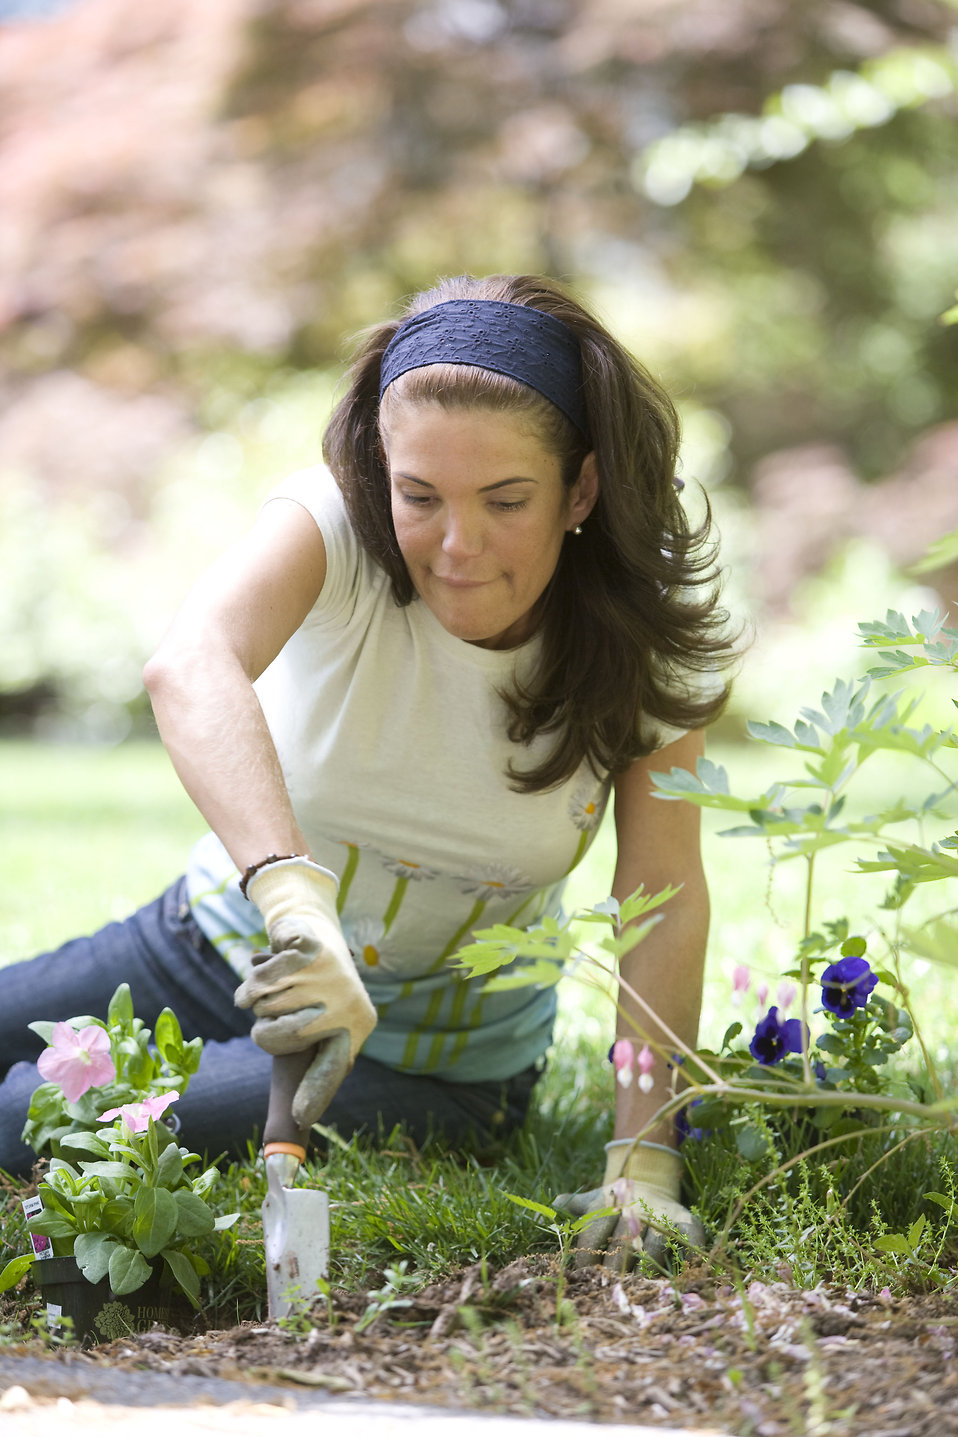 A woman enjoying gardening outdoors : Free Stock Photo